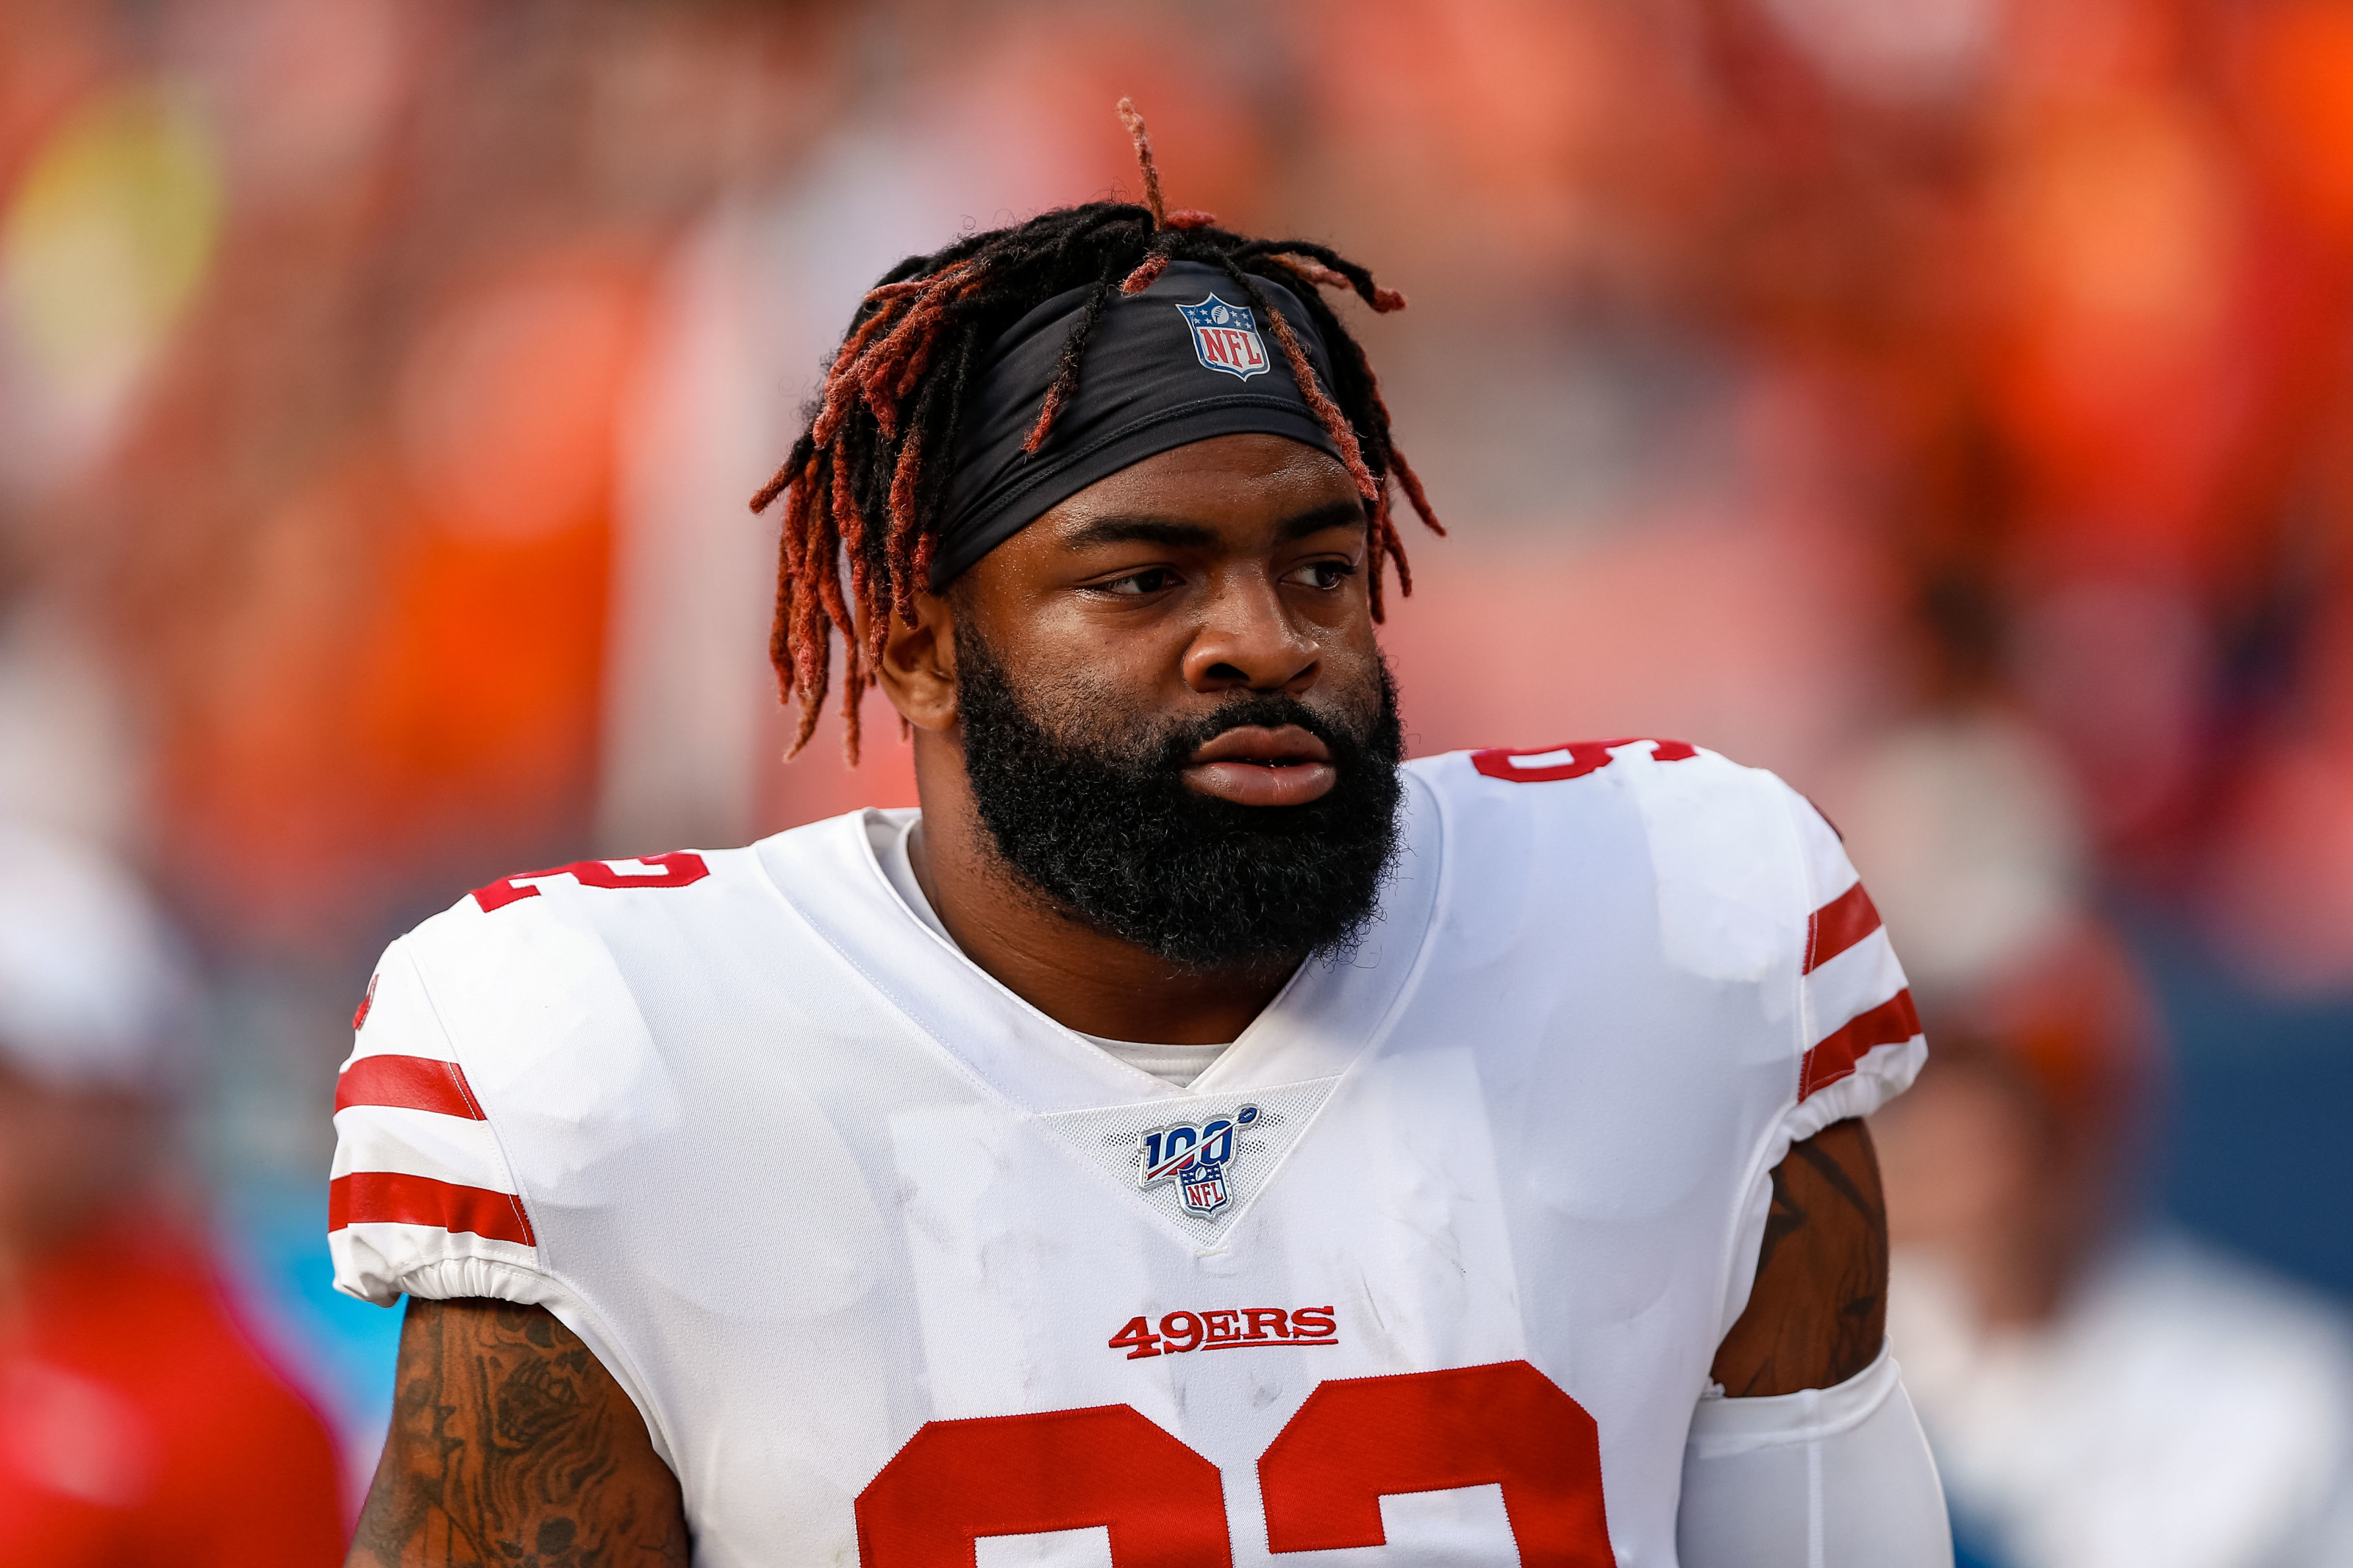 SF 49ers: 4 former players who could return in 2021